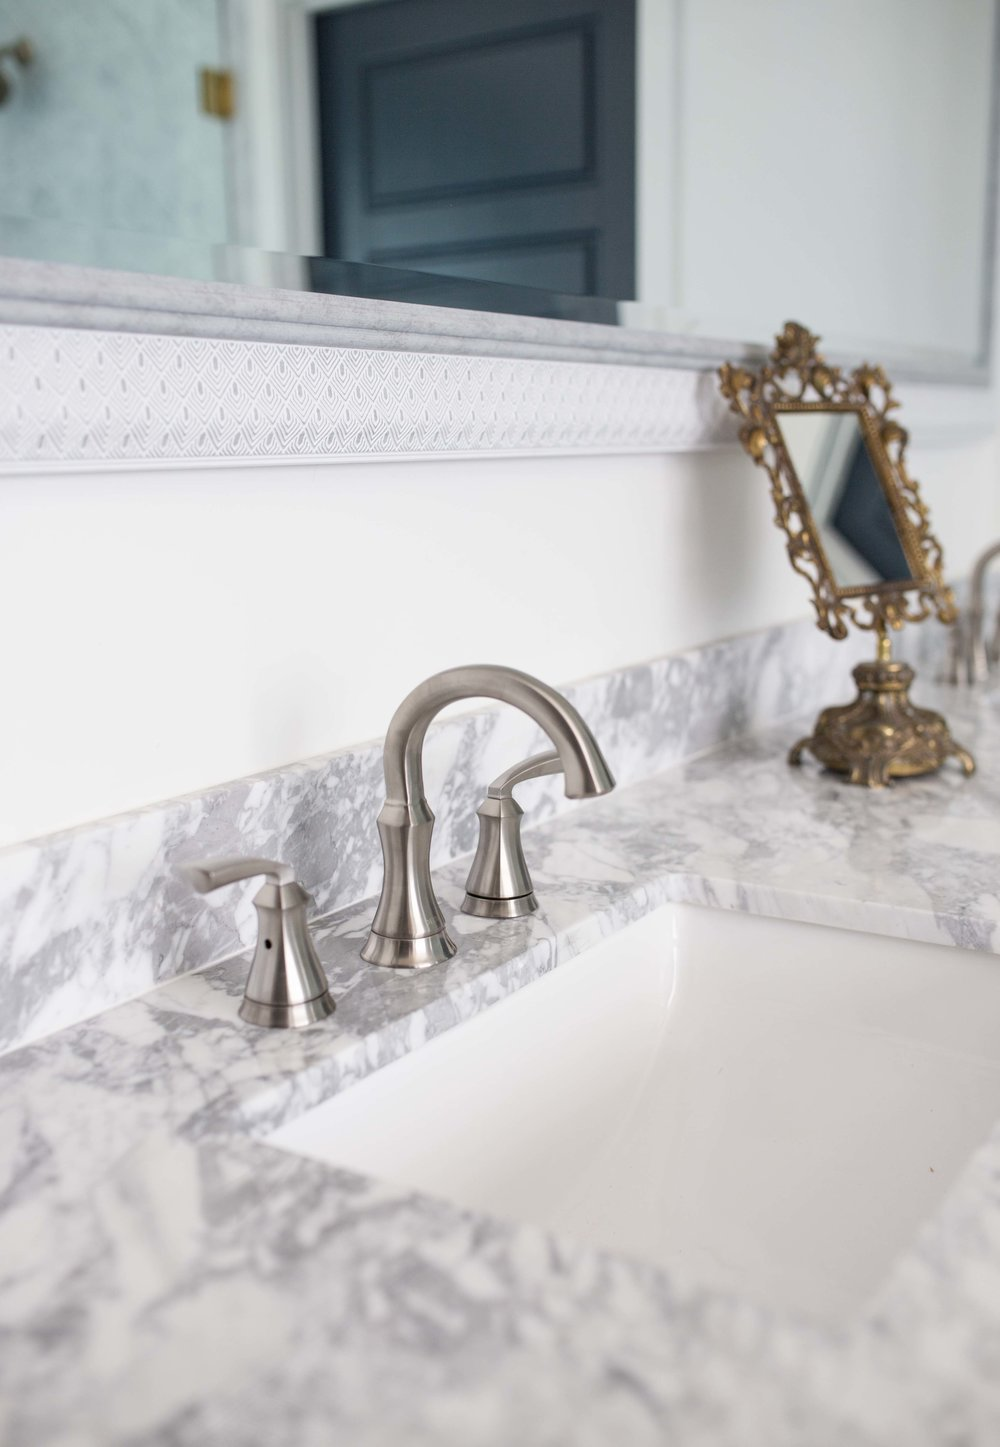 Marble counters with nickel faucets and gold make up mirror